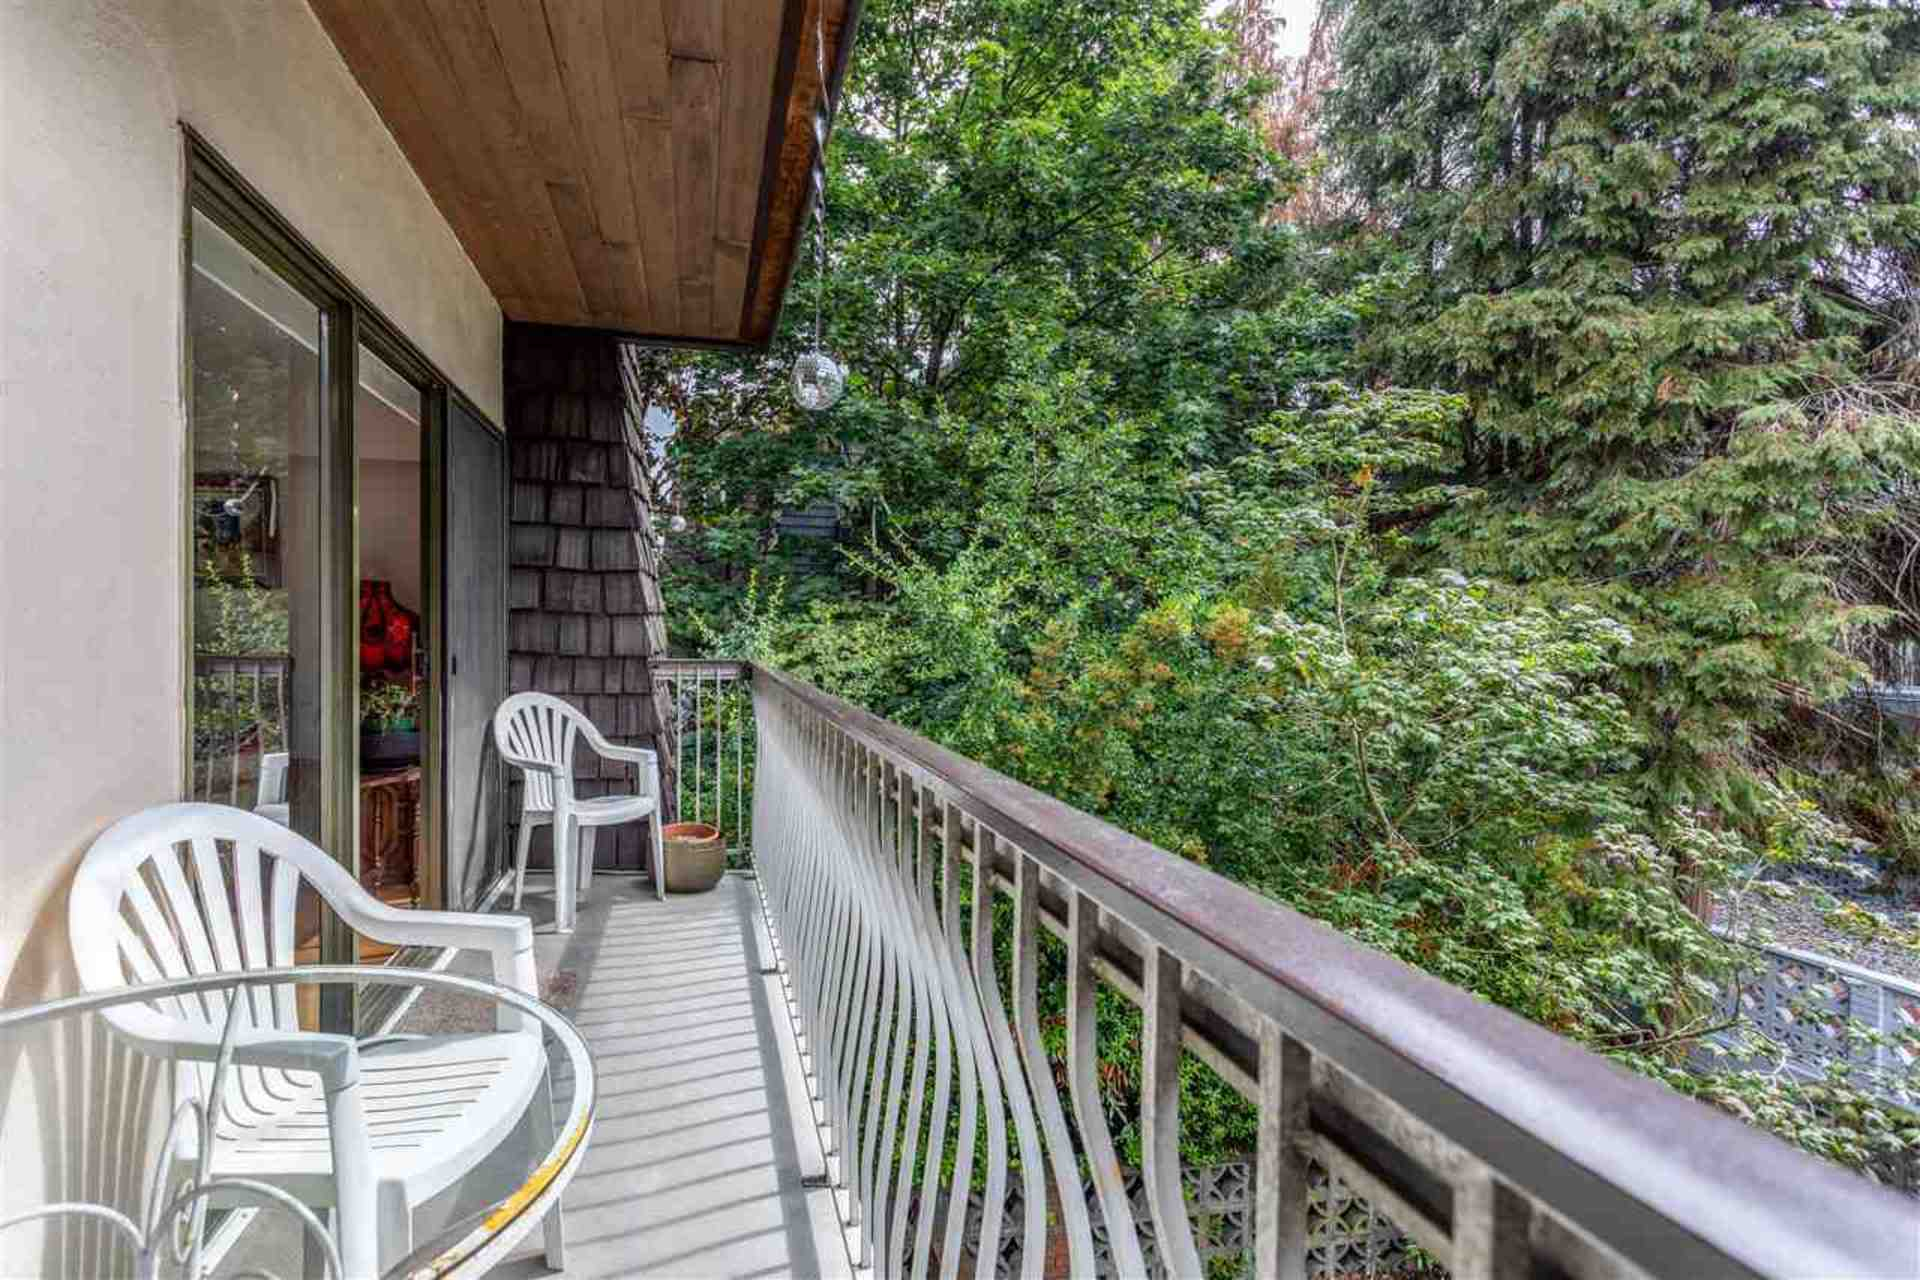 7428-19th-avenue-edmonds-be-burnaby-east-10 at 211 - 7428 19th Avenue, Edmonds BE, Burnaby East